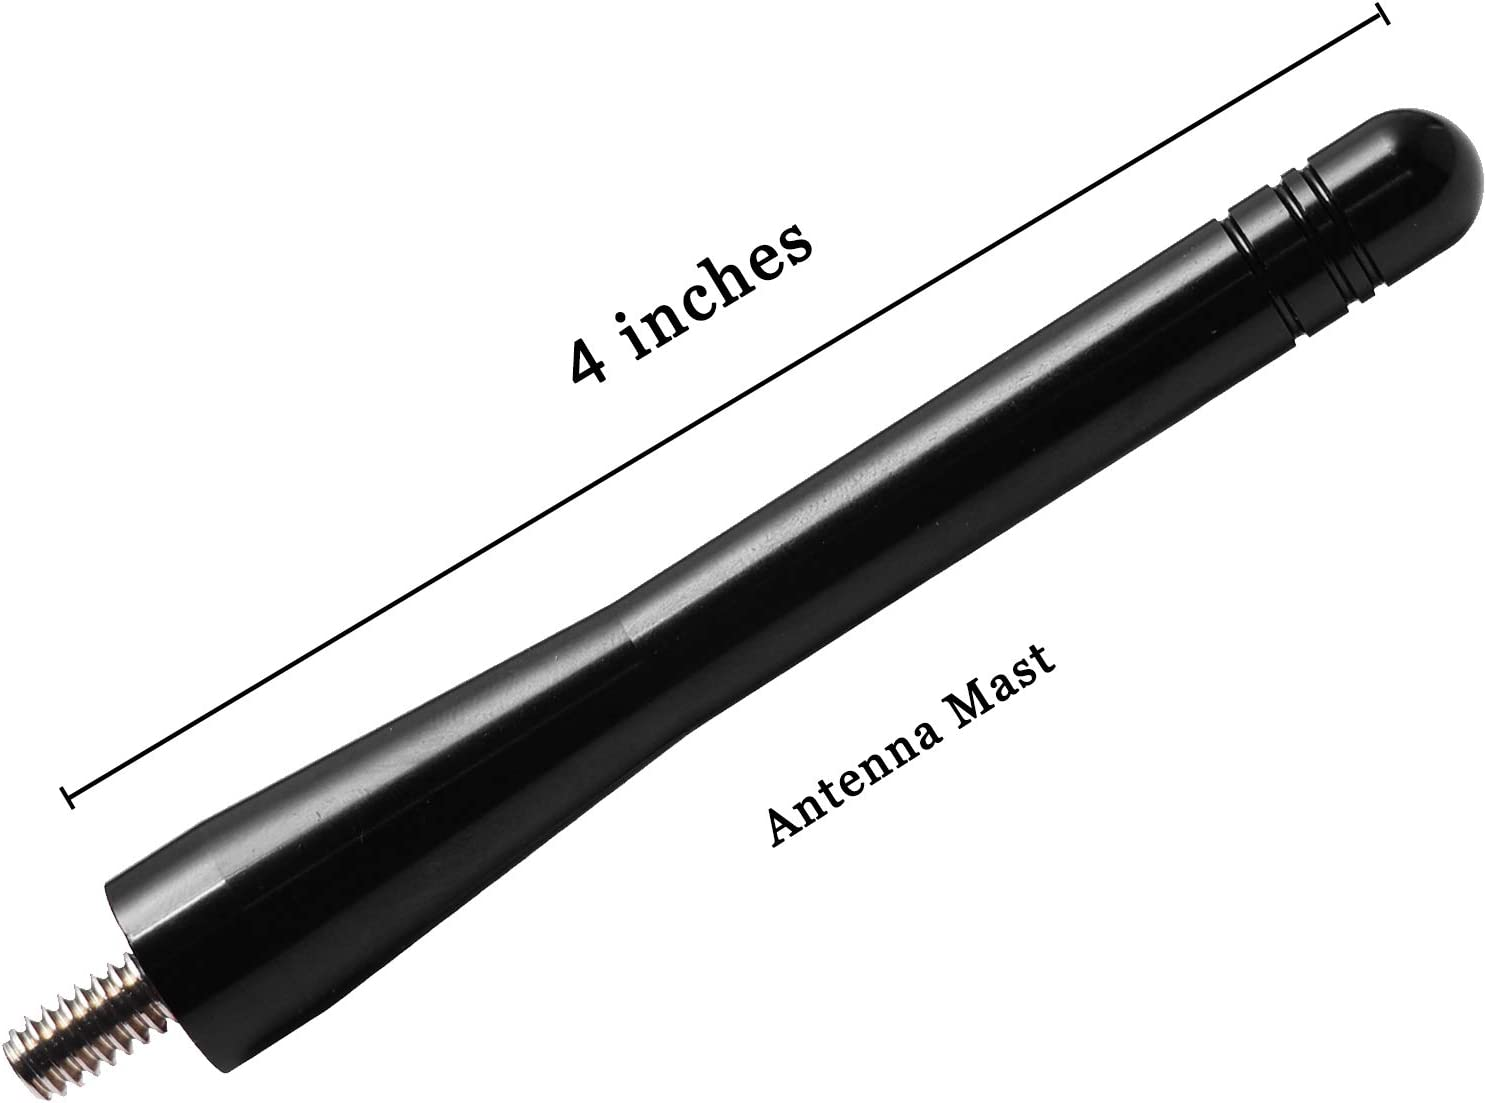 4 inches-Black JAPower Replacement Antenna Compatible with Jeep Commander XK 2006-2010